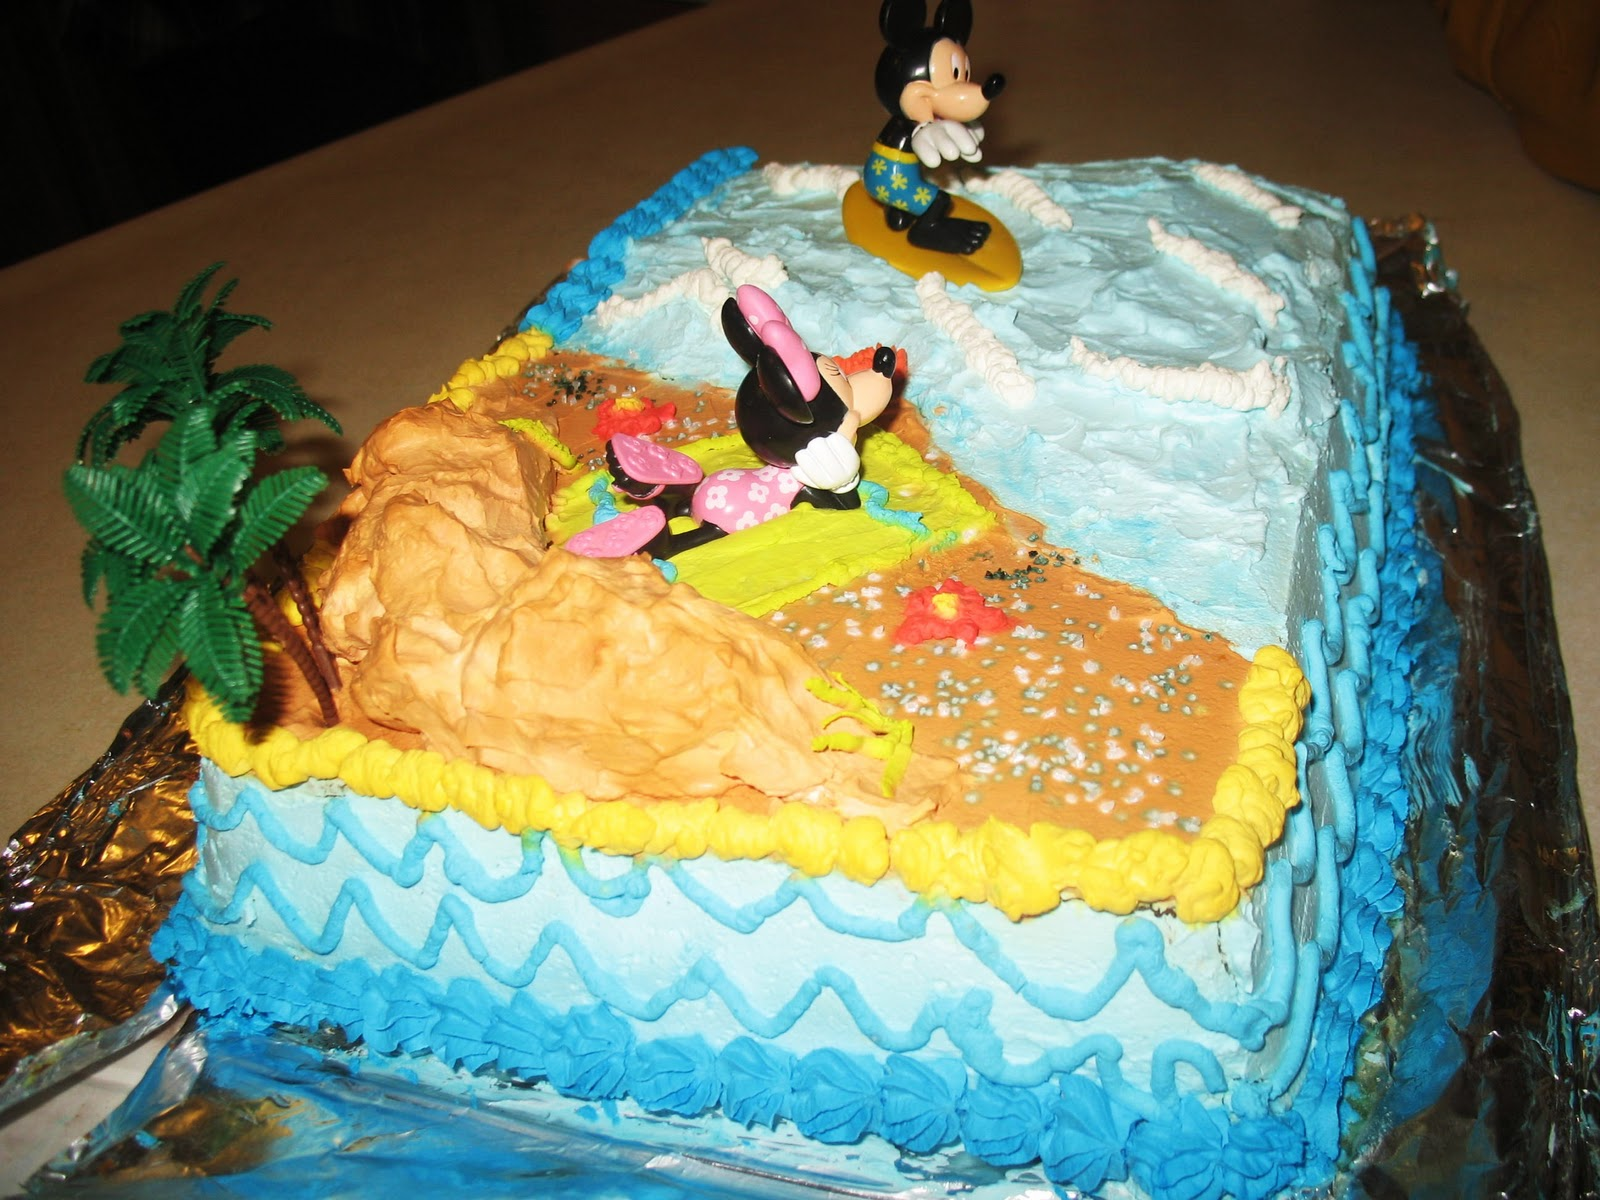 Cake Images For Bf : Forever a Piece of Cake: Mickey & Minnie Mouse beach ...